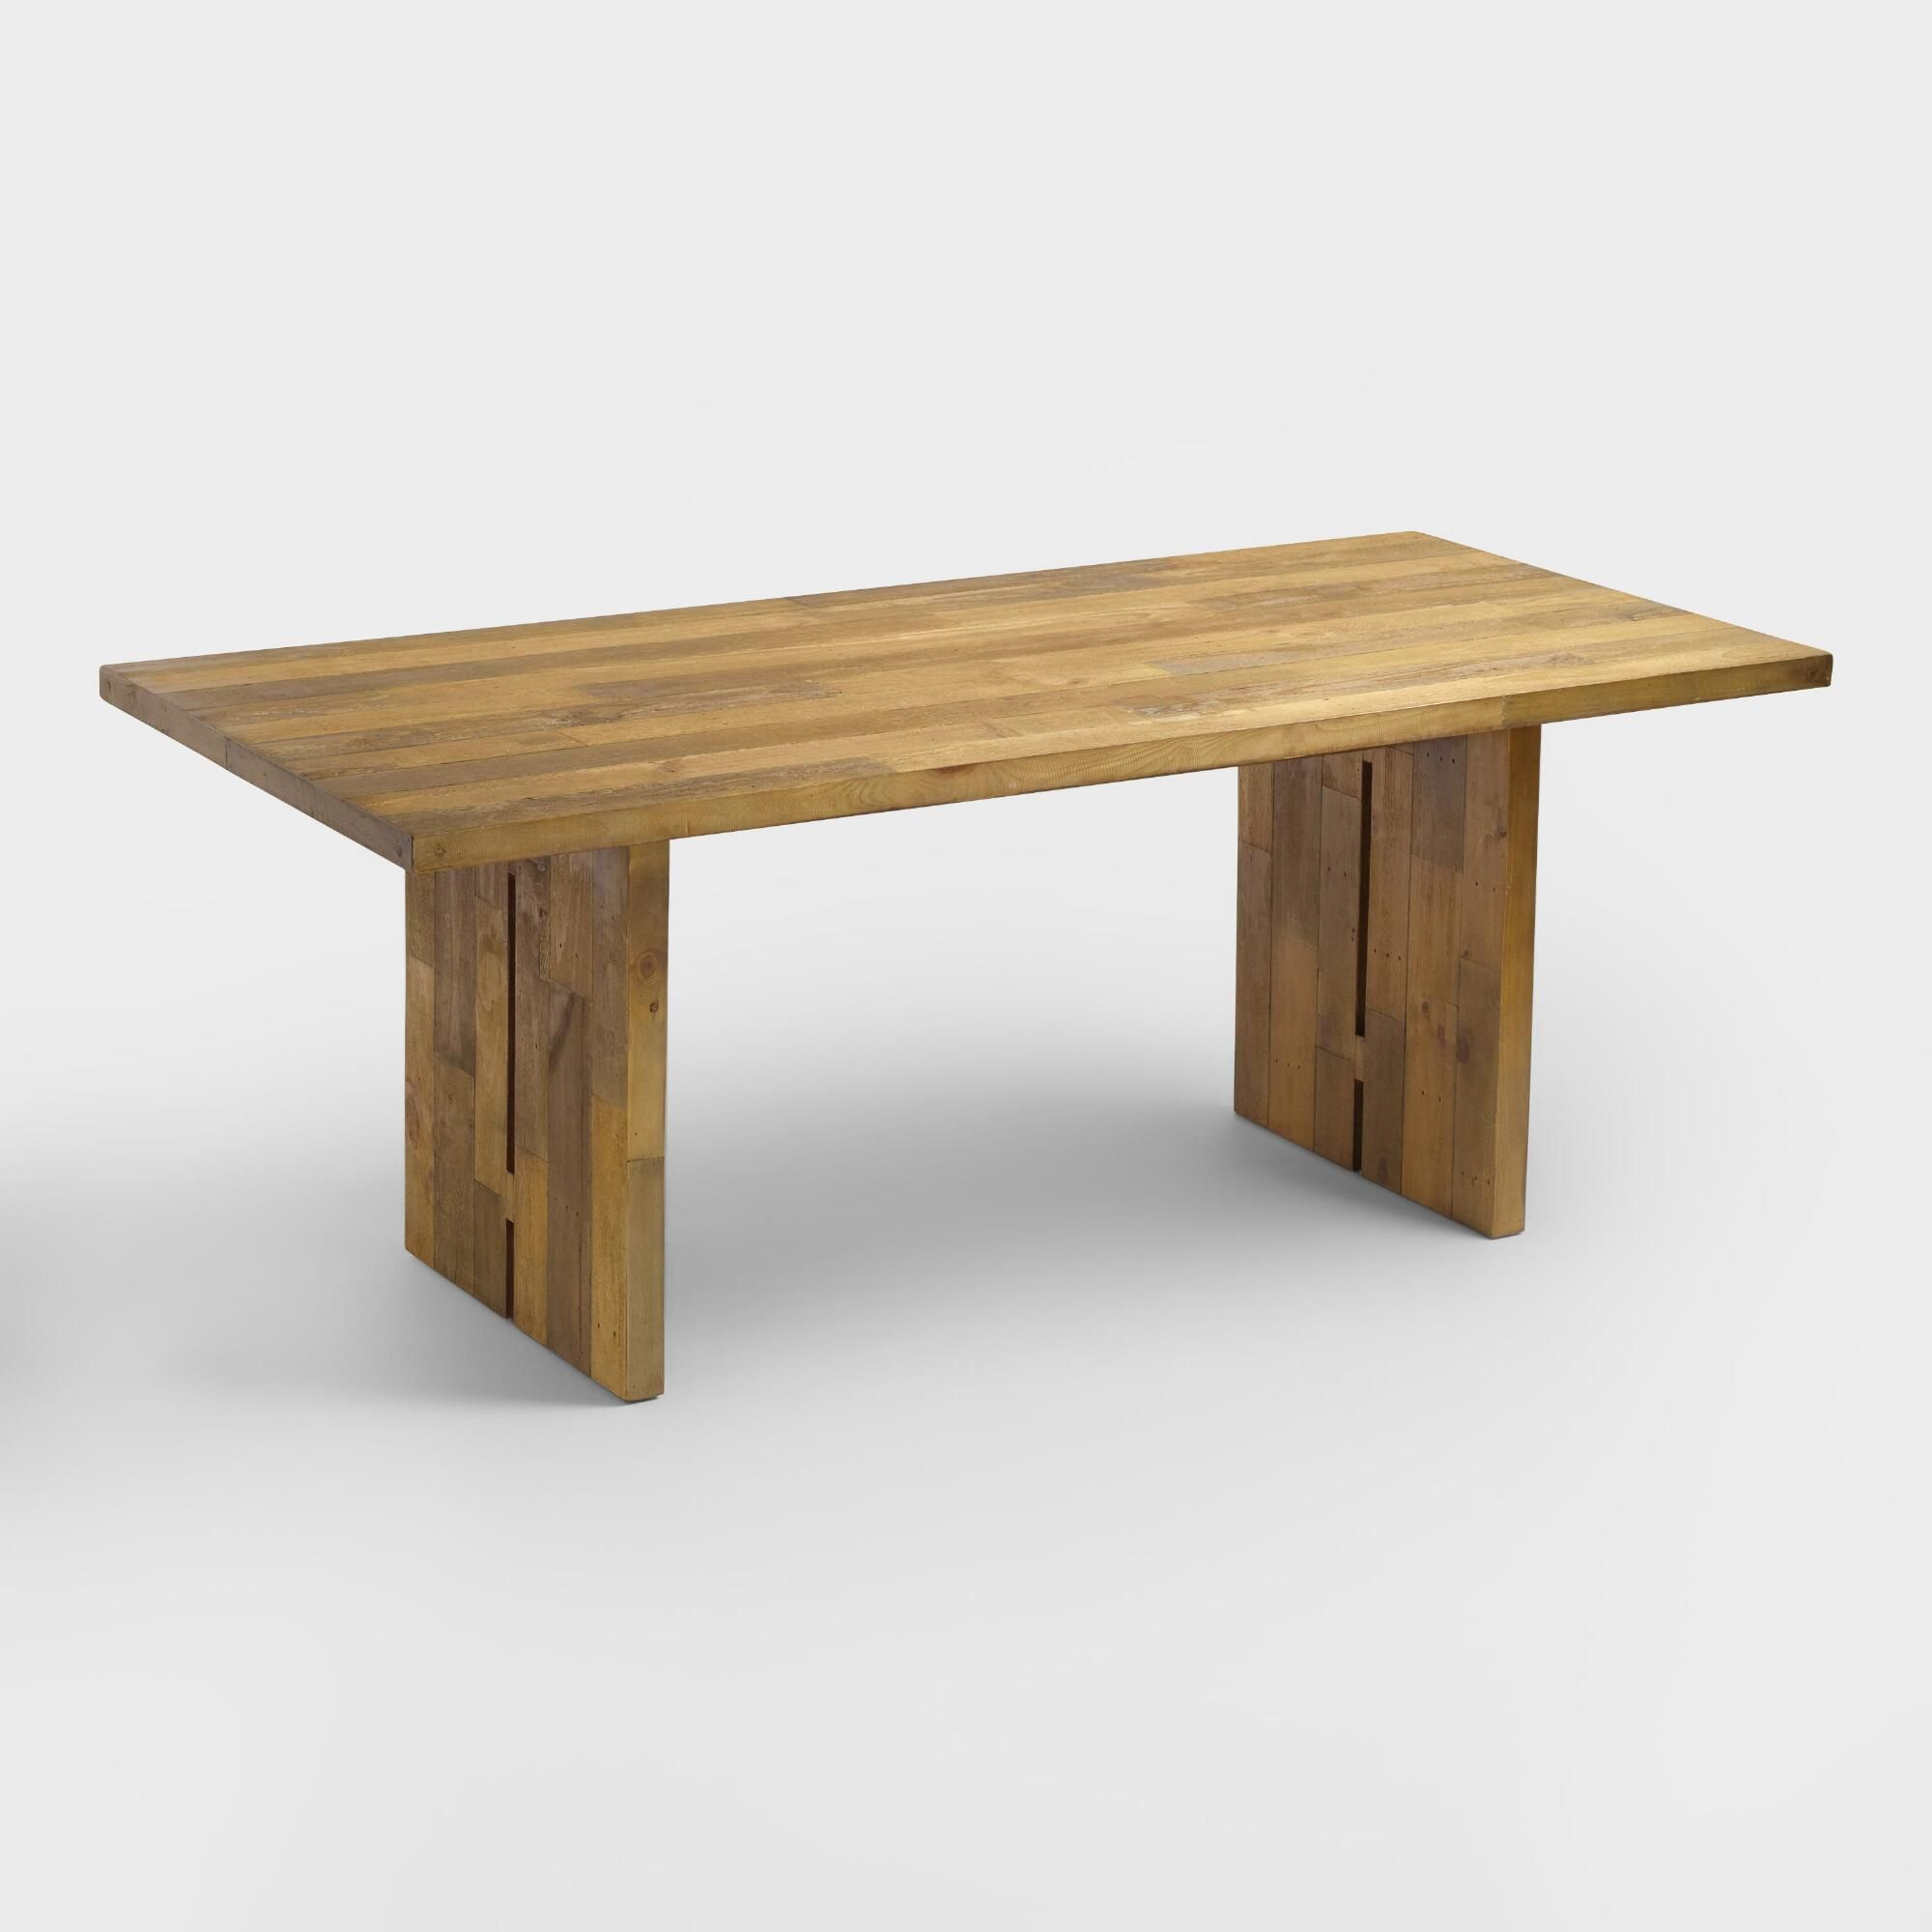 Reclaimed Pine Nolan Dining Table: Natural – Woodworld Inside Newest Nolan Round Pedestal Dining Tables (View 16 of 25)